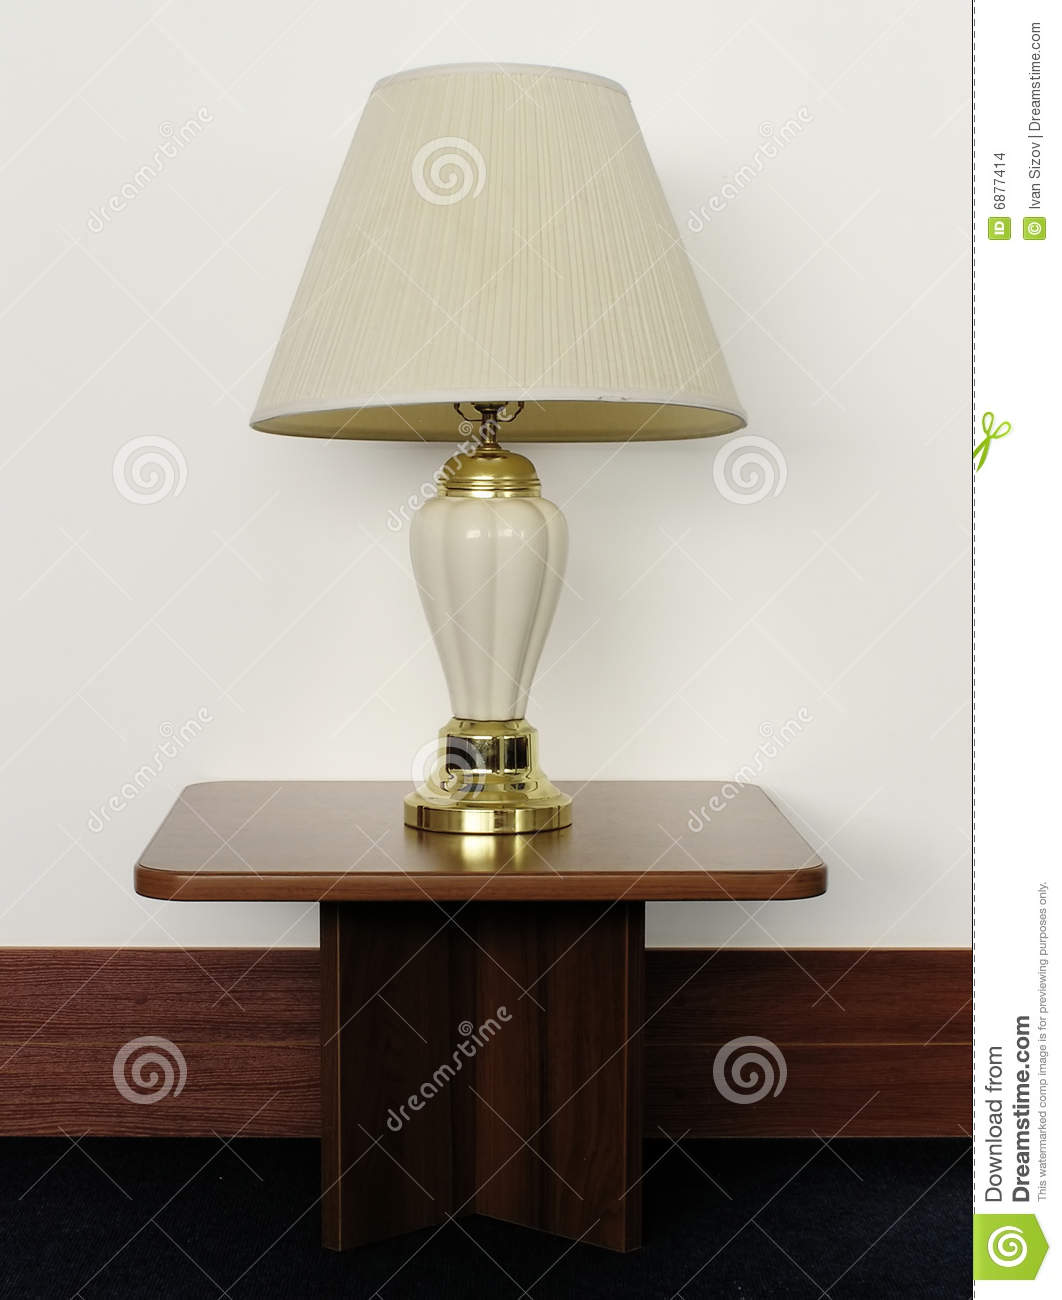 Lamp On Table: Old desk lamp on table,Lighting